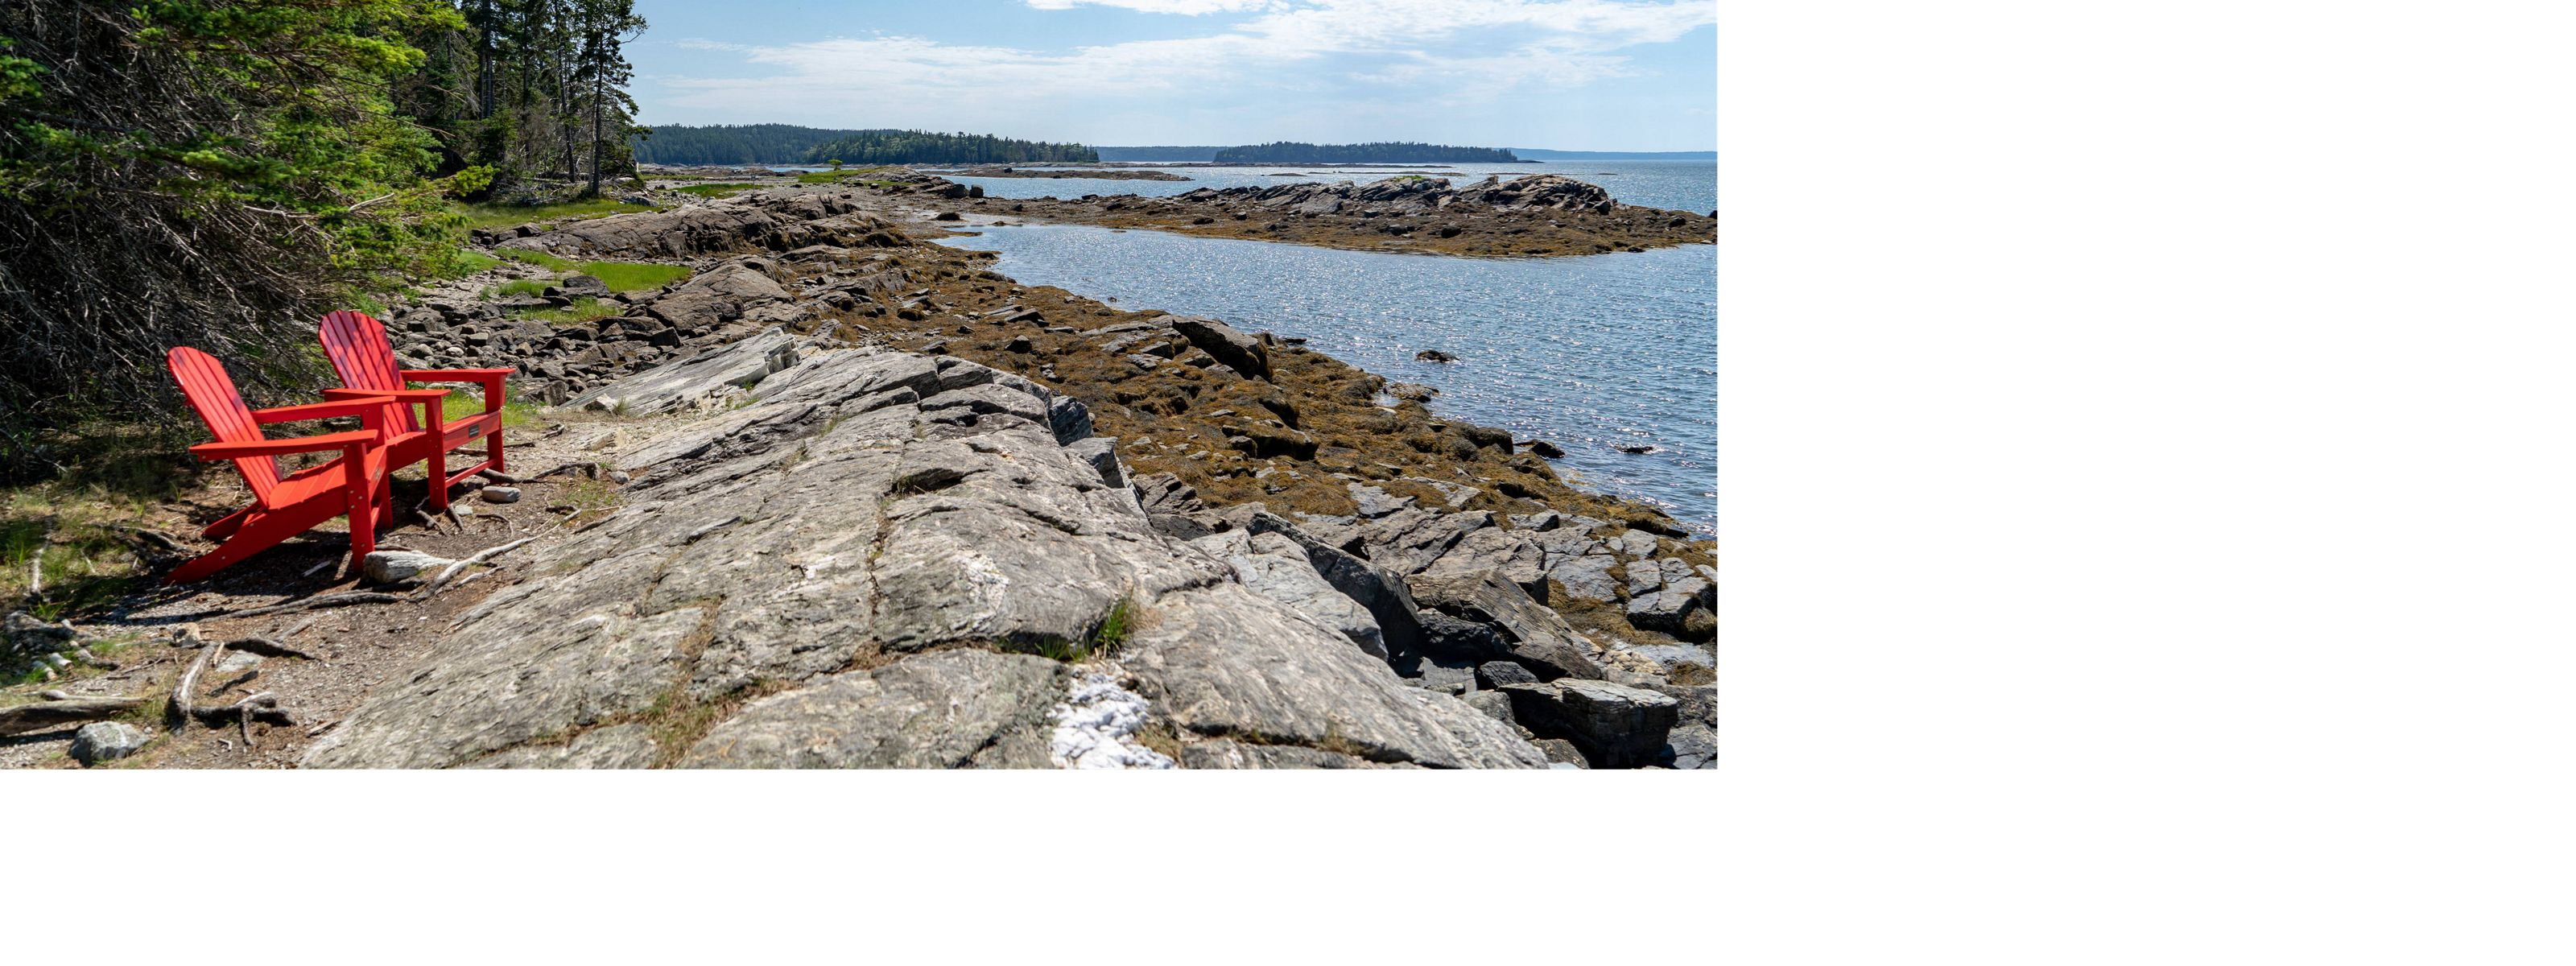 View along the rocky shoreline on the Maine coast